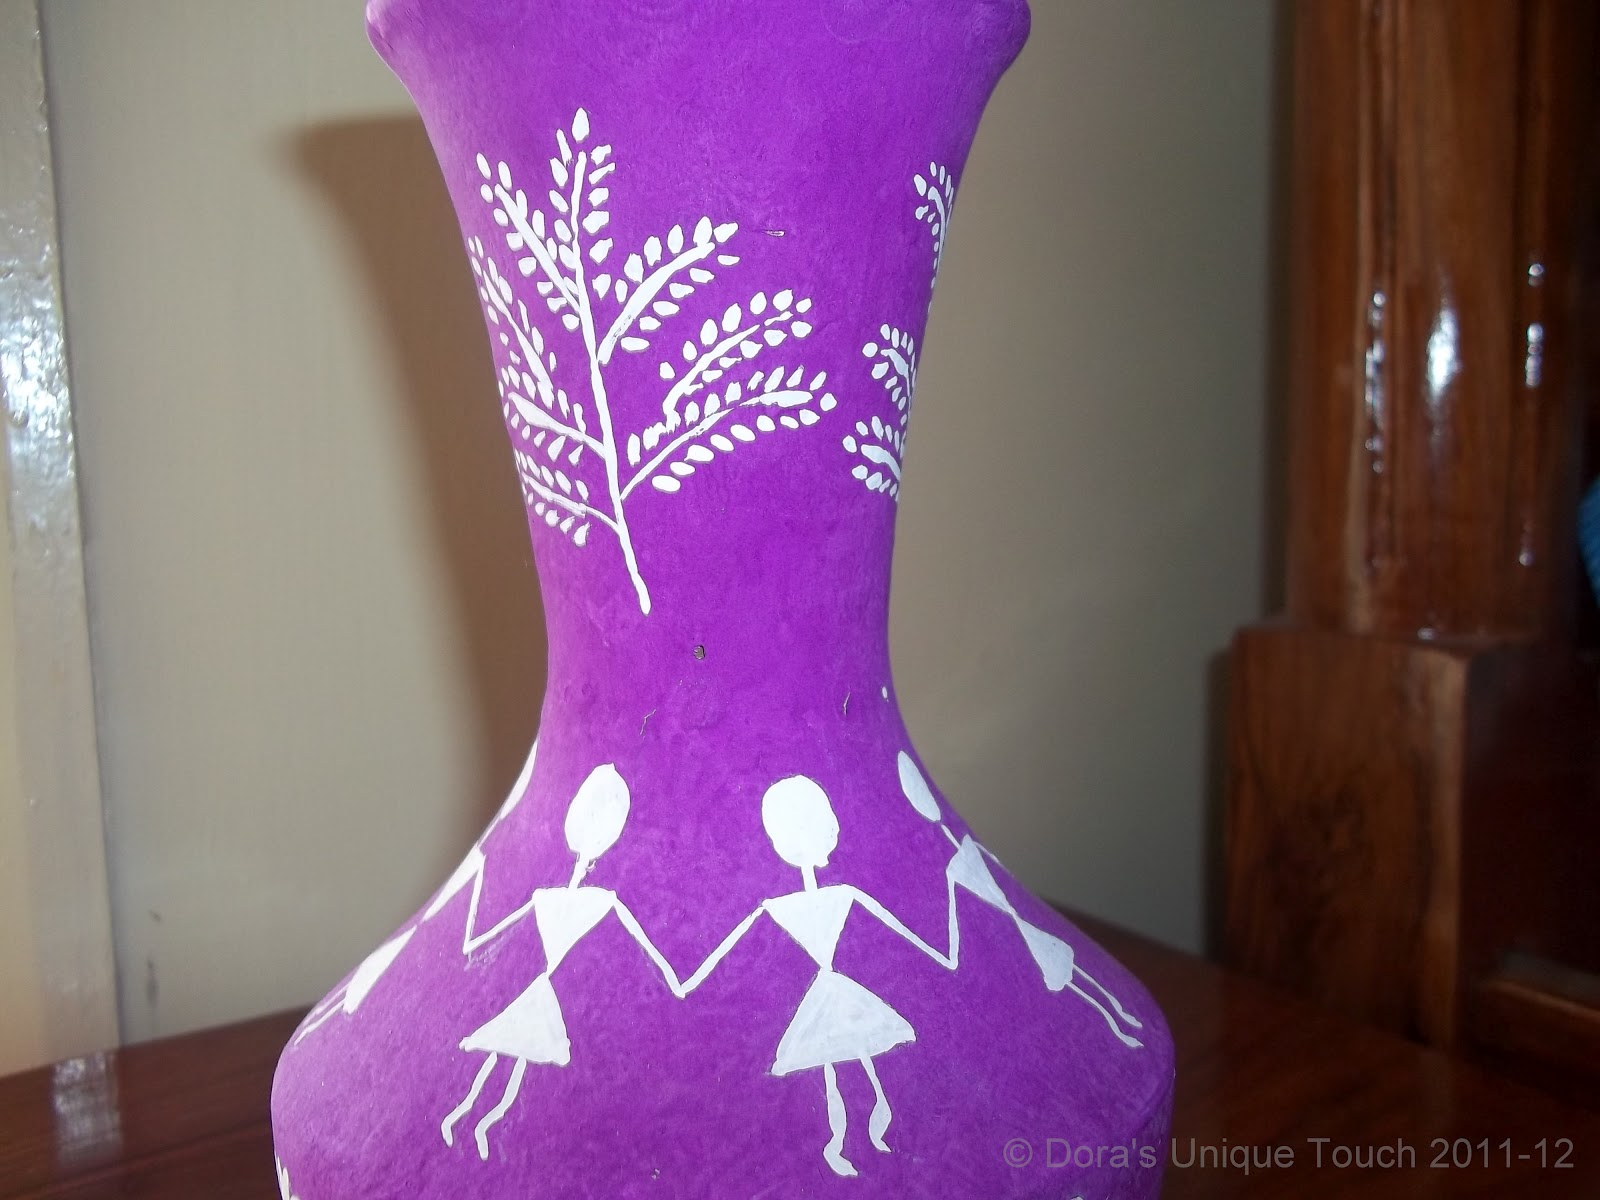 Doras unique touch flower vases the warli art the warli tribes basically use circle triangle and squares in warli paintings tried my hand on warli art this time reviewsmspy